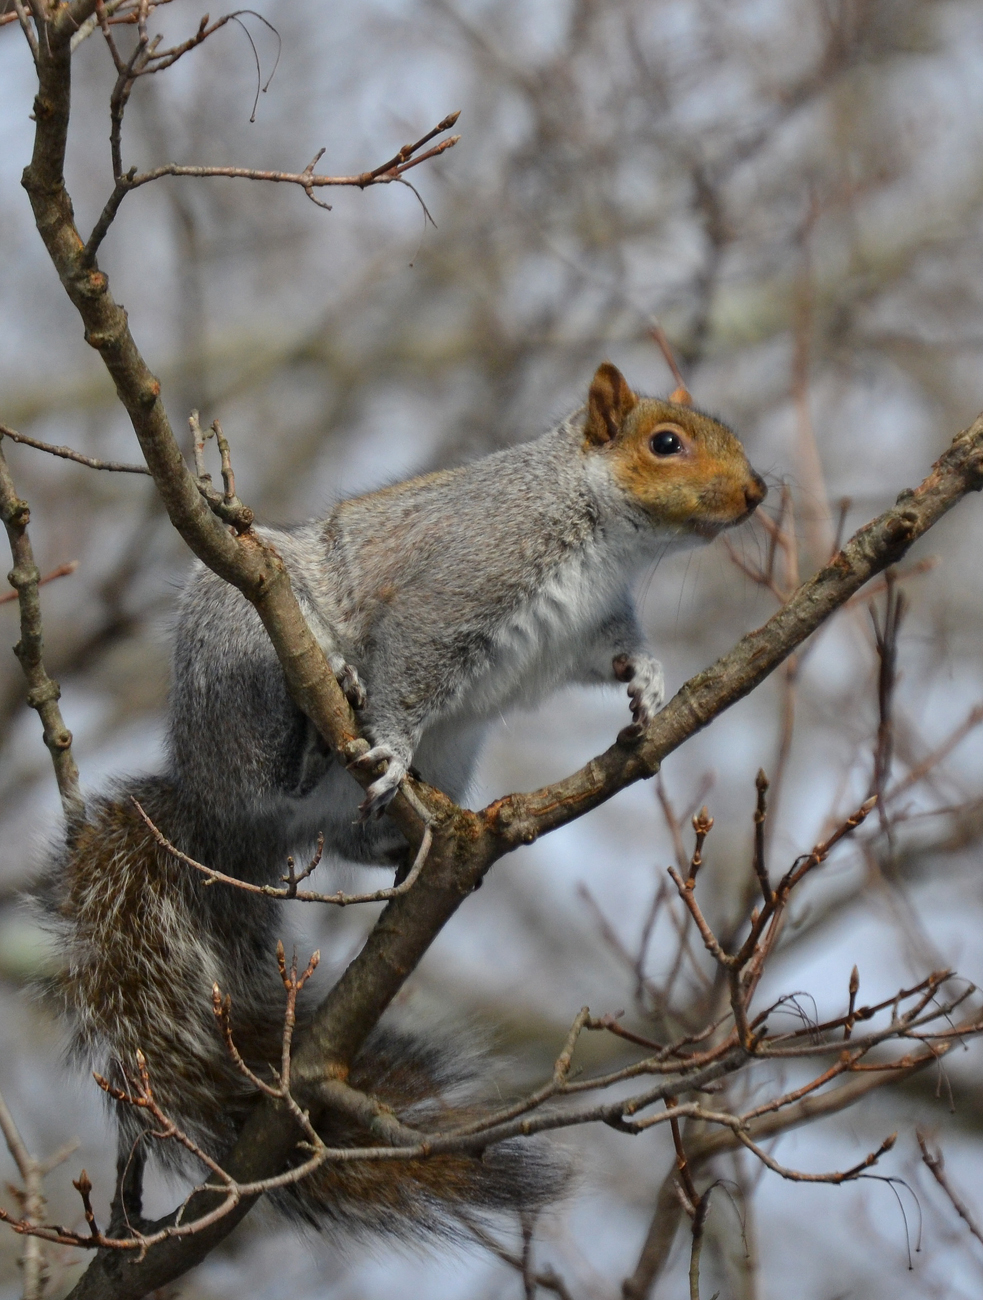 Meaning of white squirrel sighting - I Just Love Those Dark Red Faces Pale Gray And White Bodies And Bellies And Super Fluffy Tails And They Re Pretty Fat Now Too Which Can Only Mean Extra